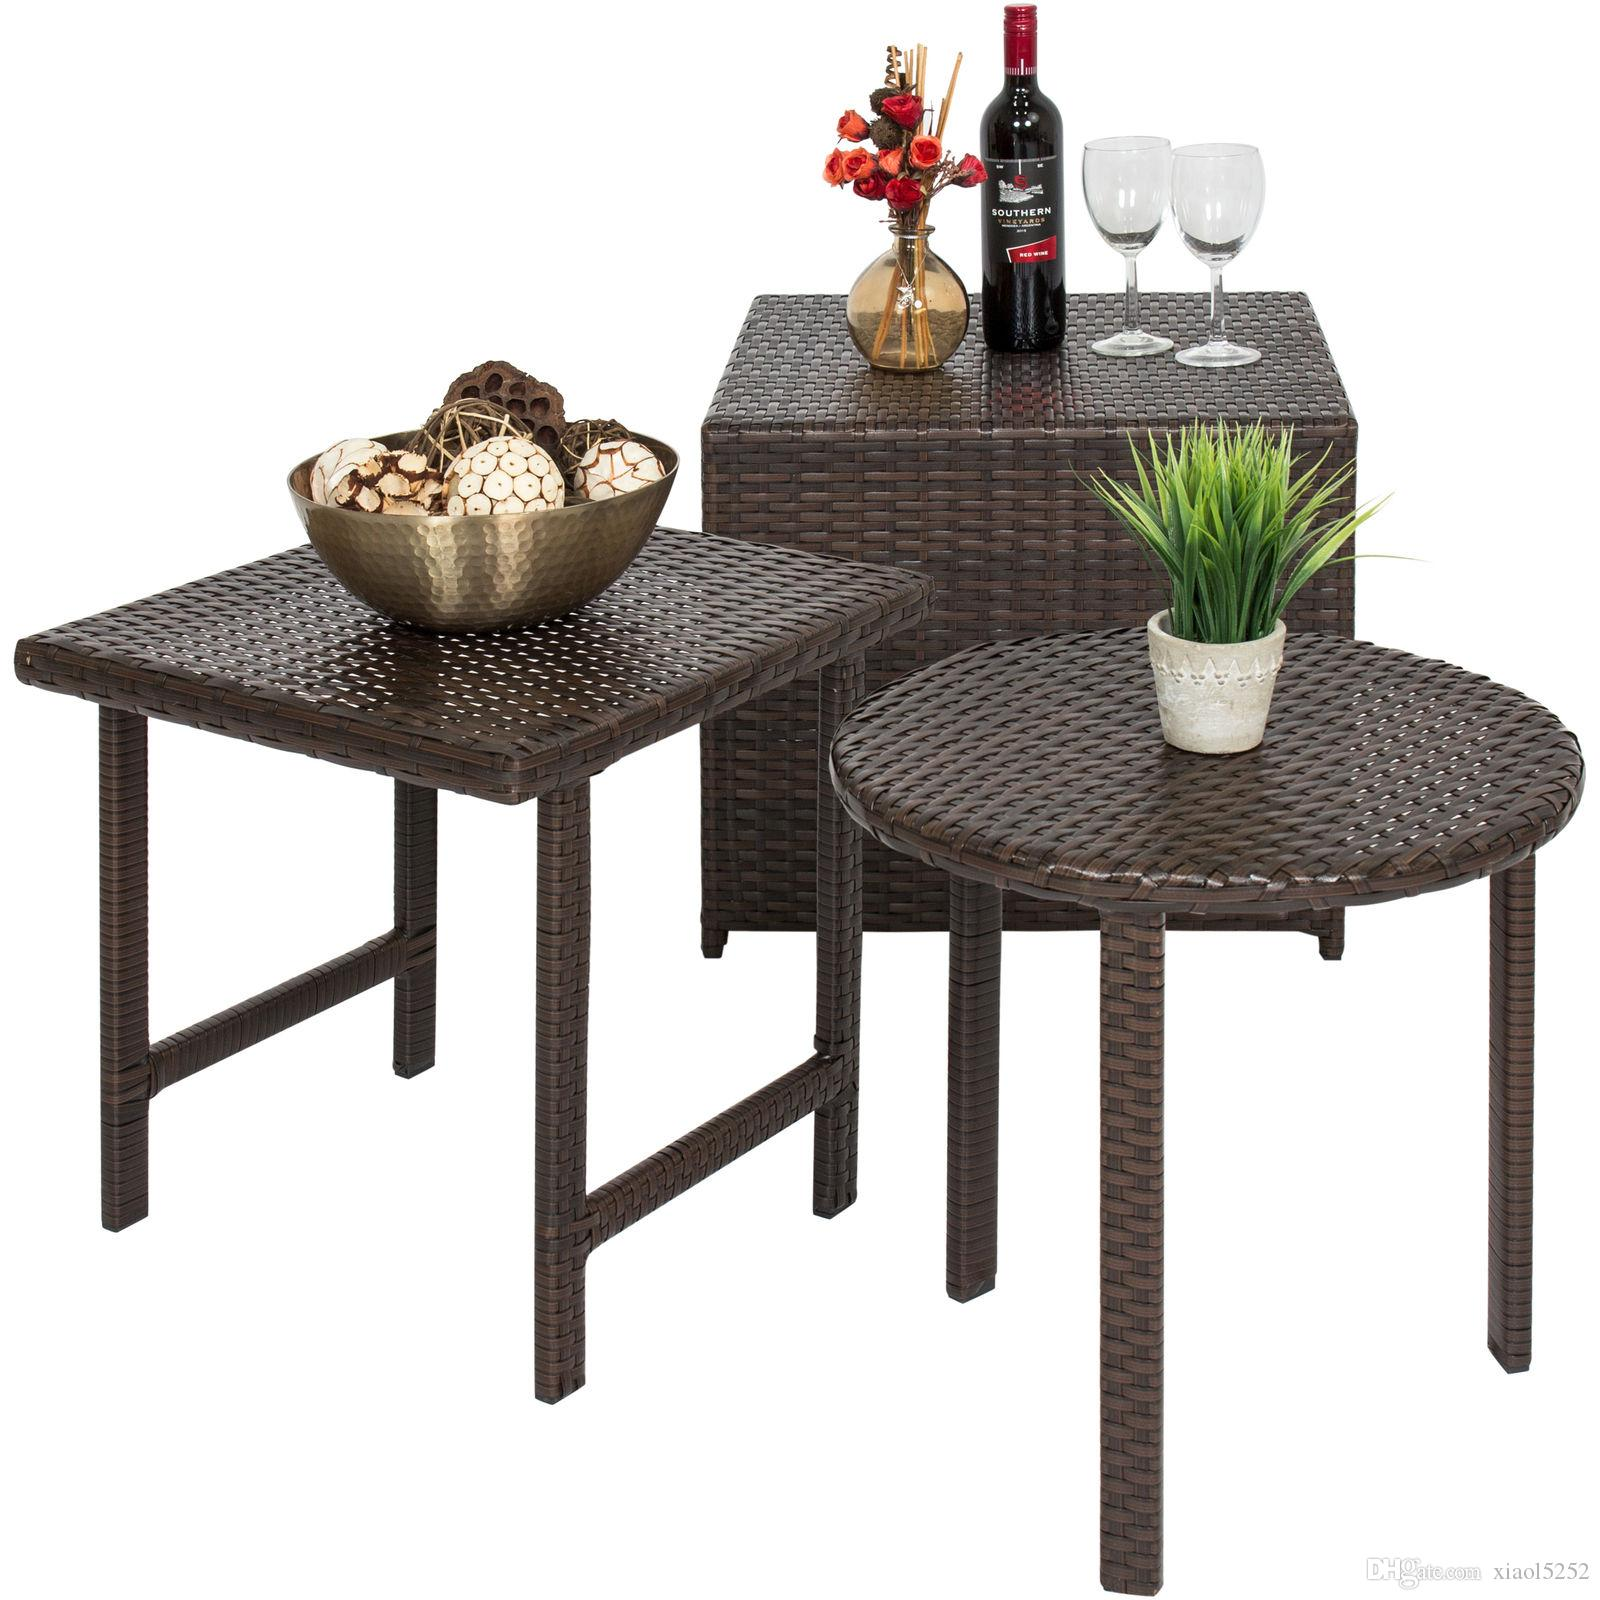 Best choice products outdoor patio furniture wicker table set uk 2019 from xiaol5252 uk 88 45 dhgate uk